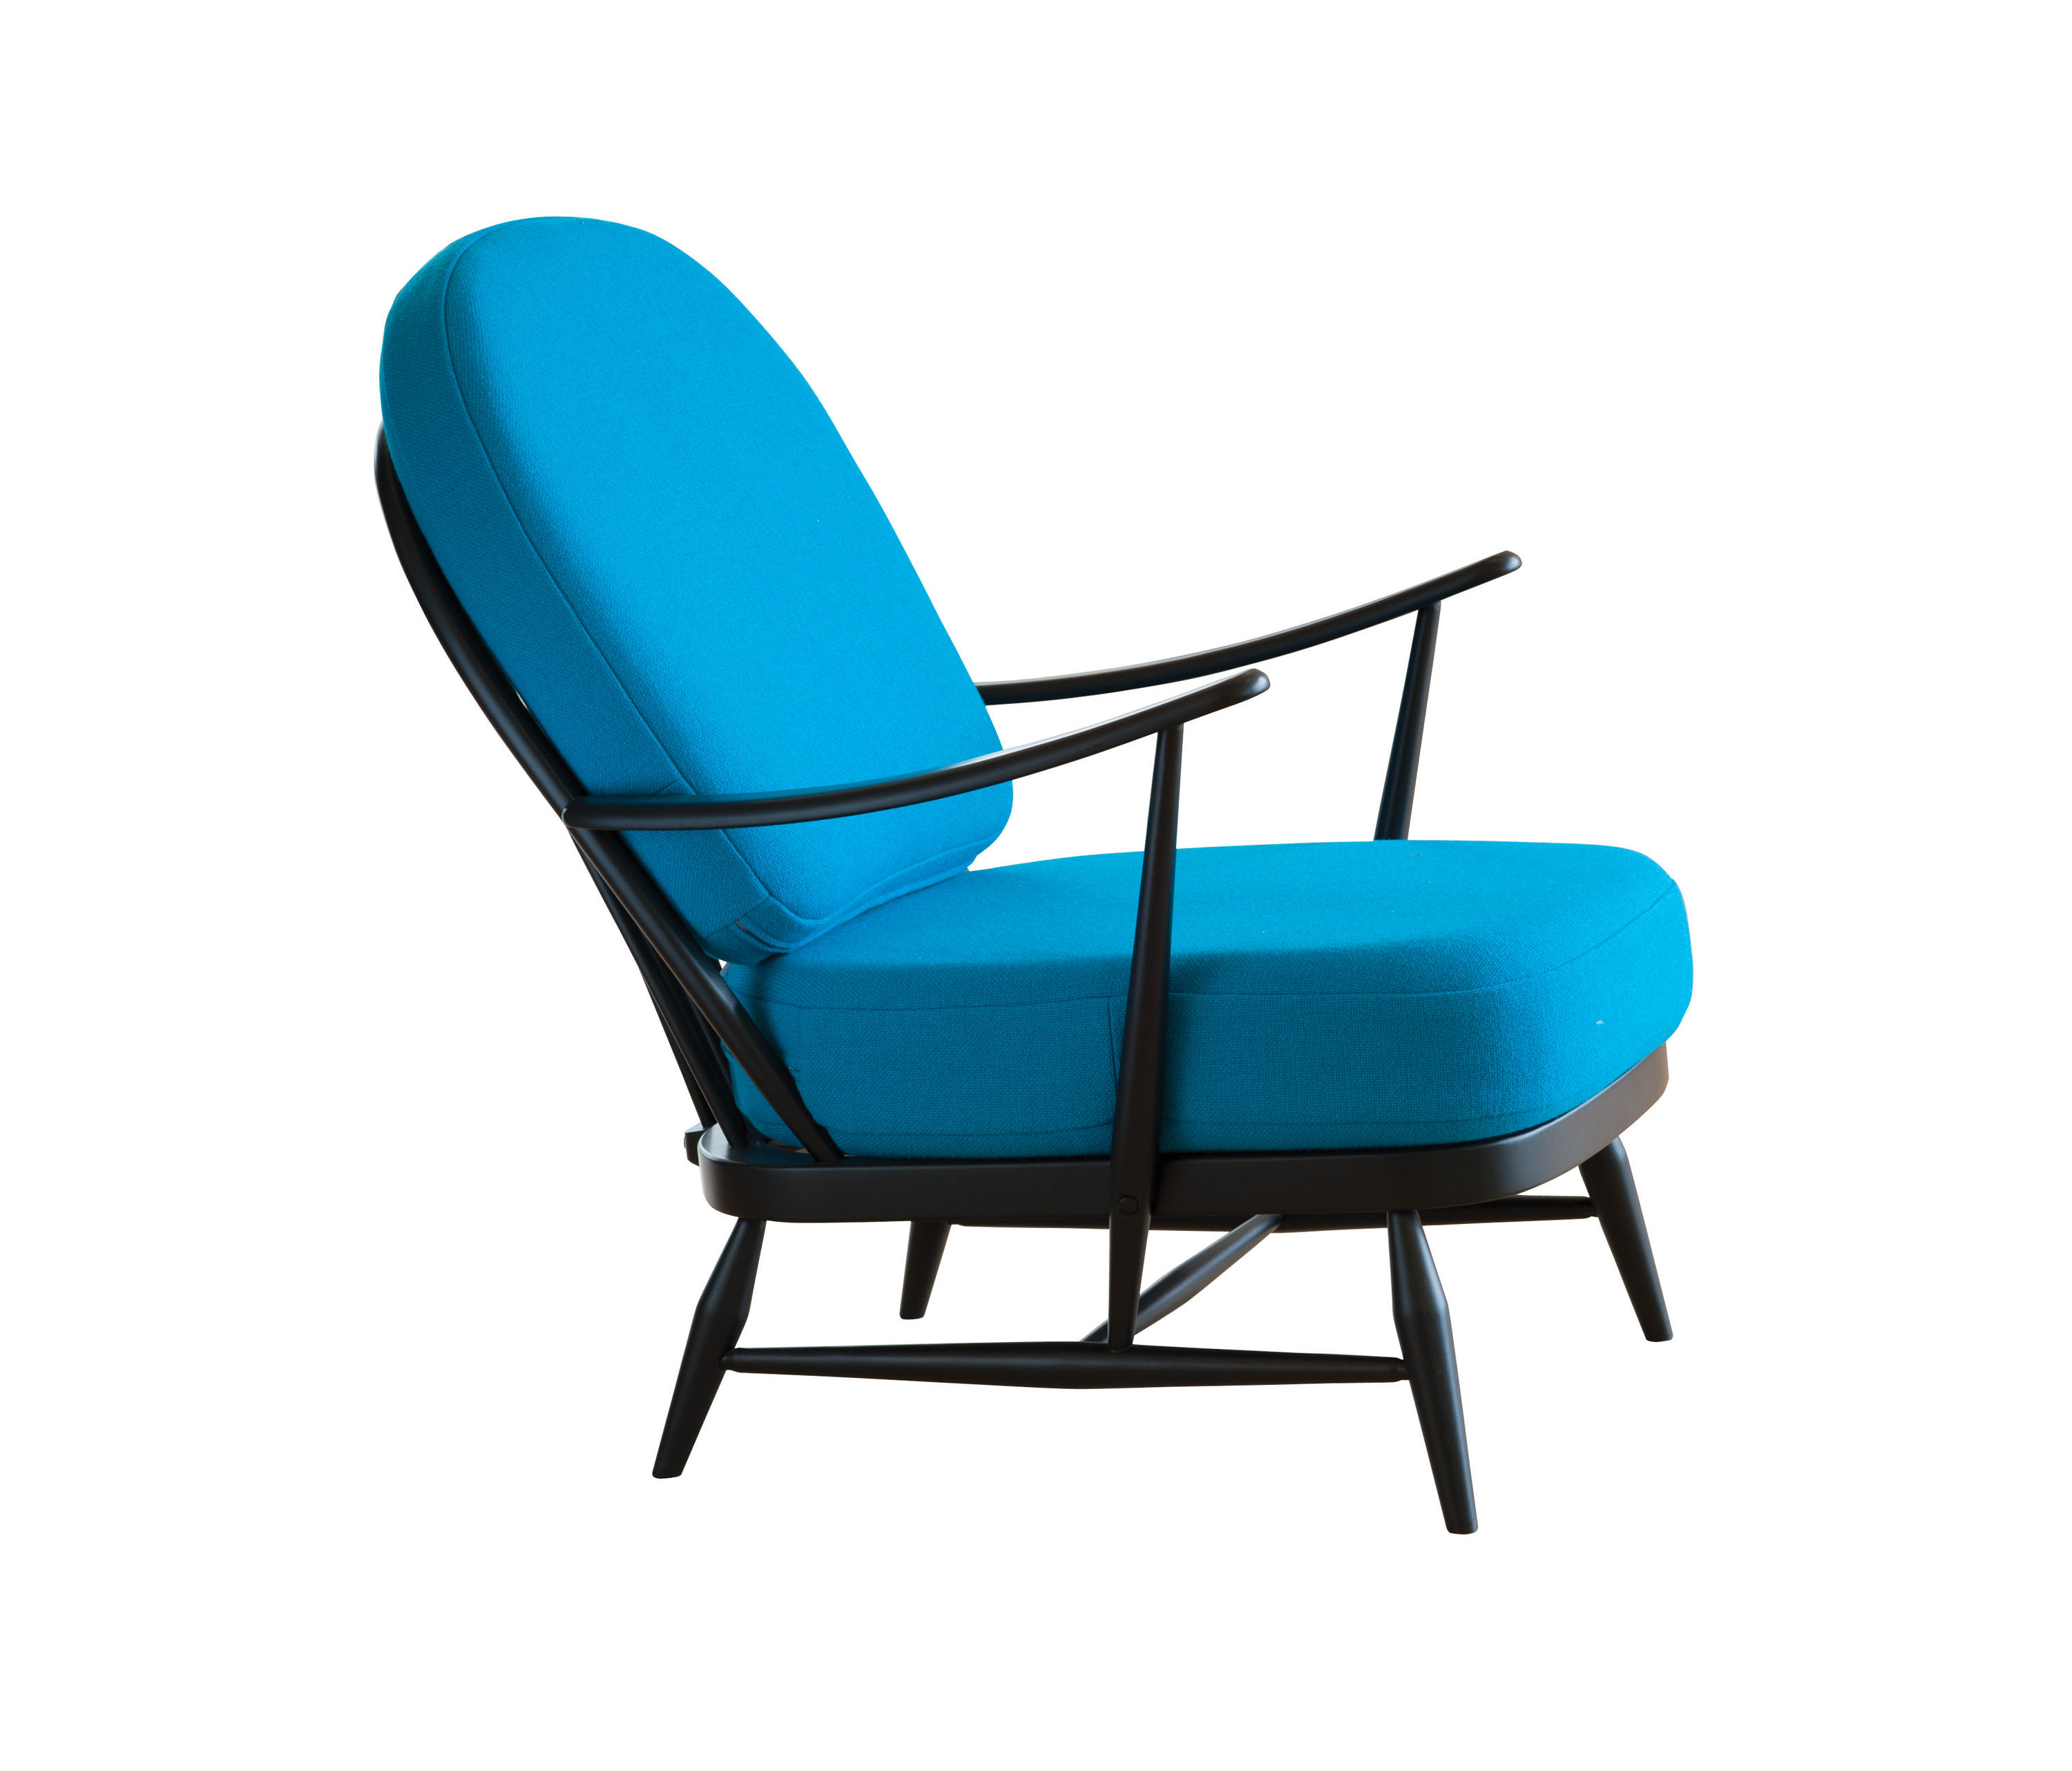 Originals Easy Chair By Ercol Lounge Chairs